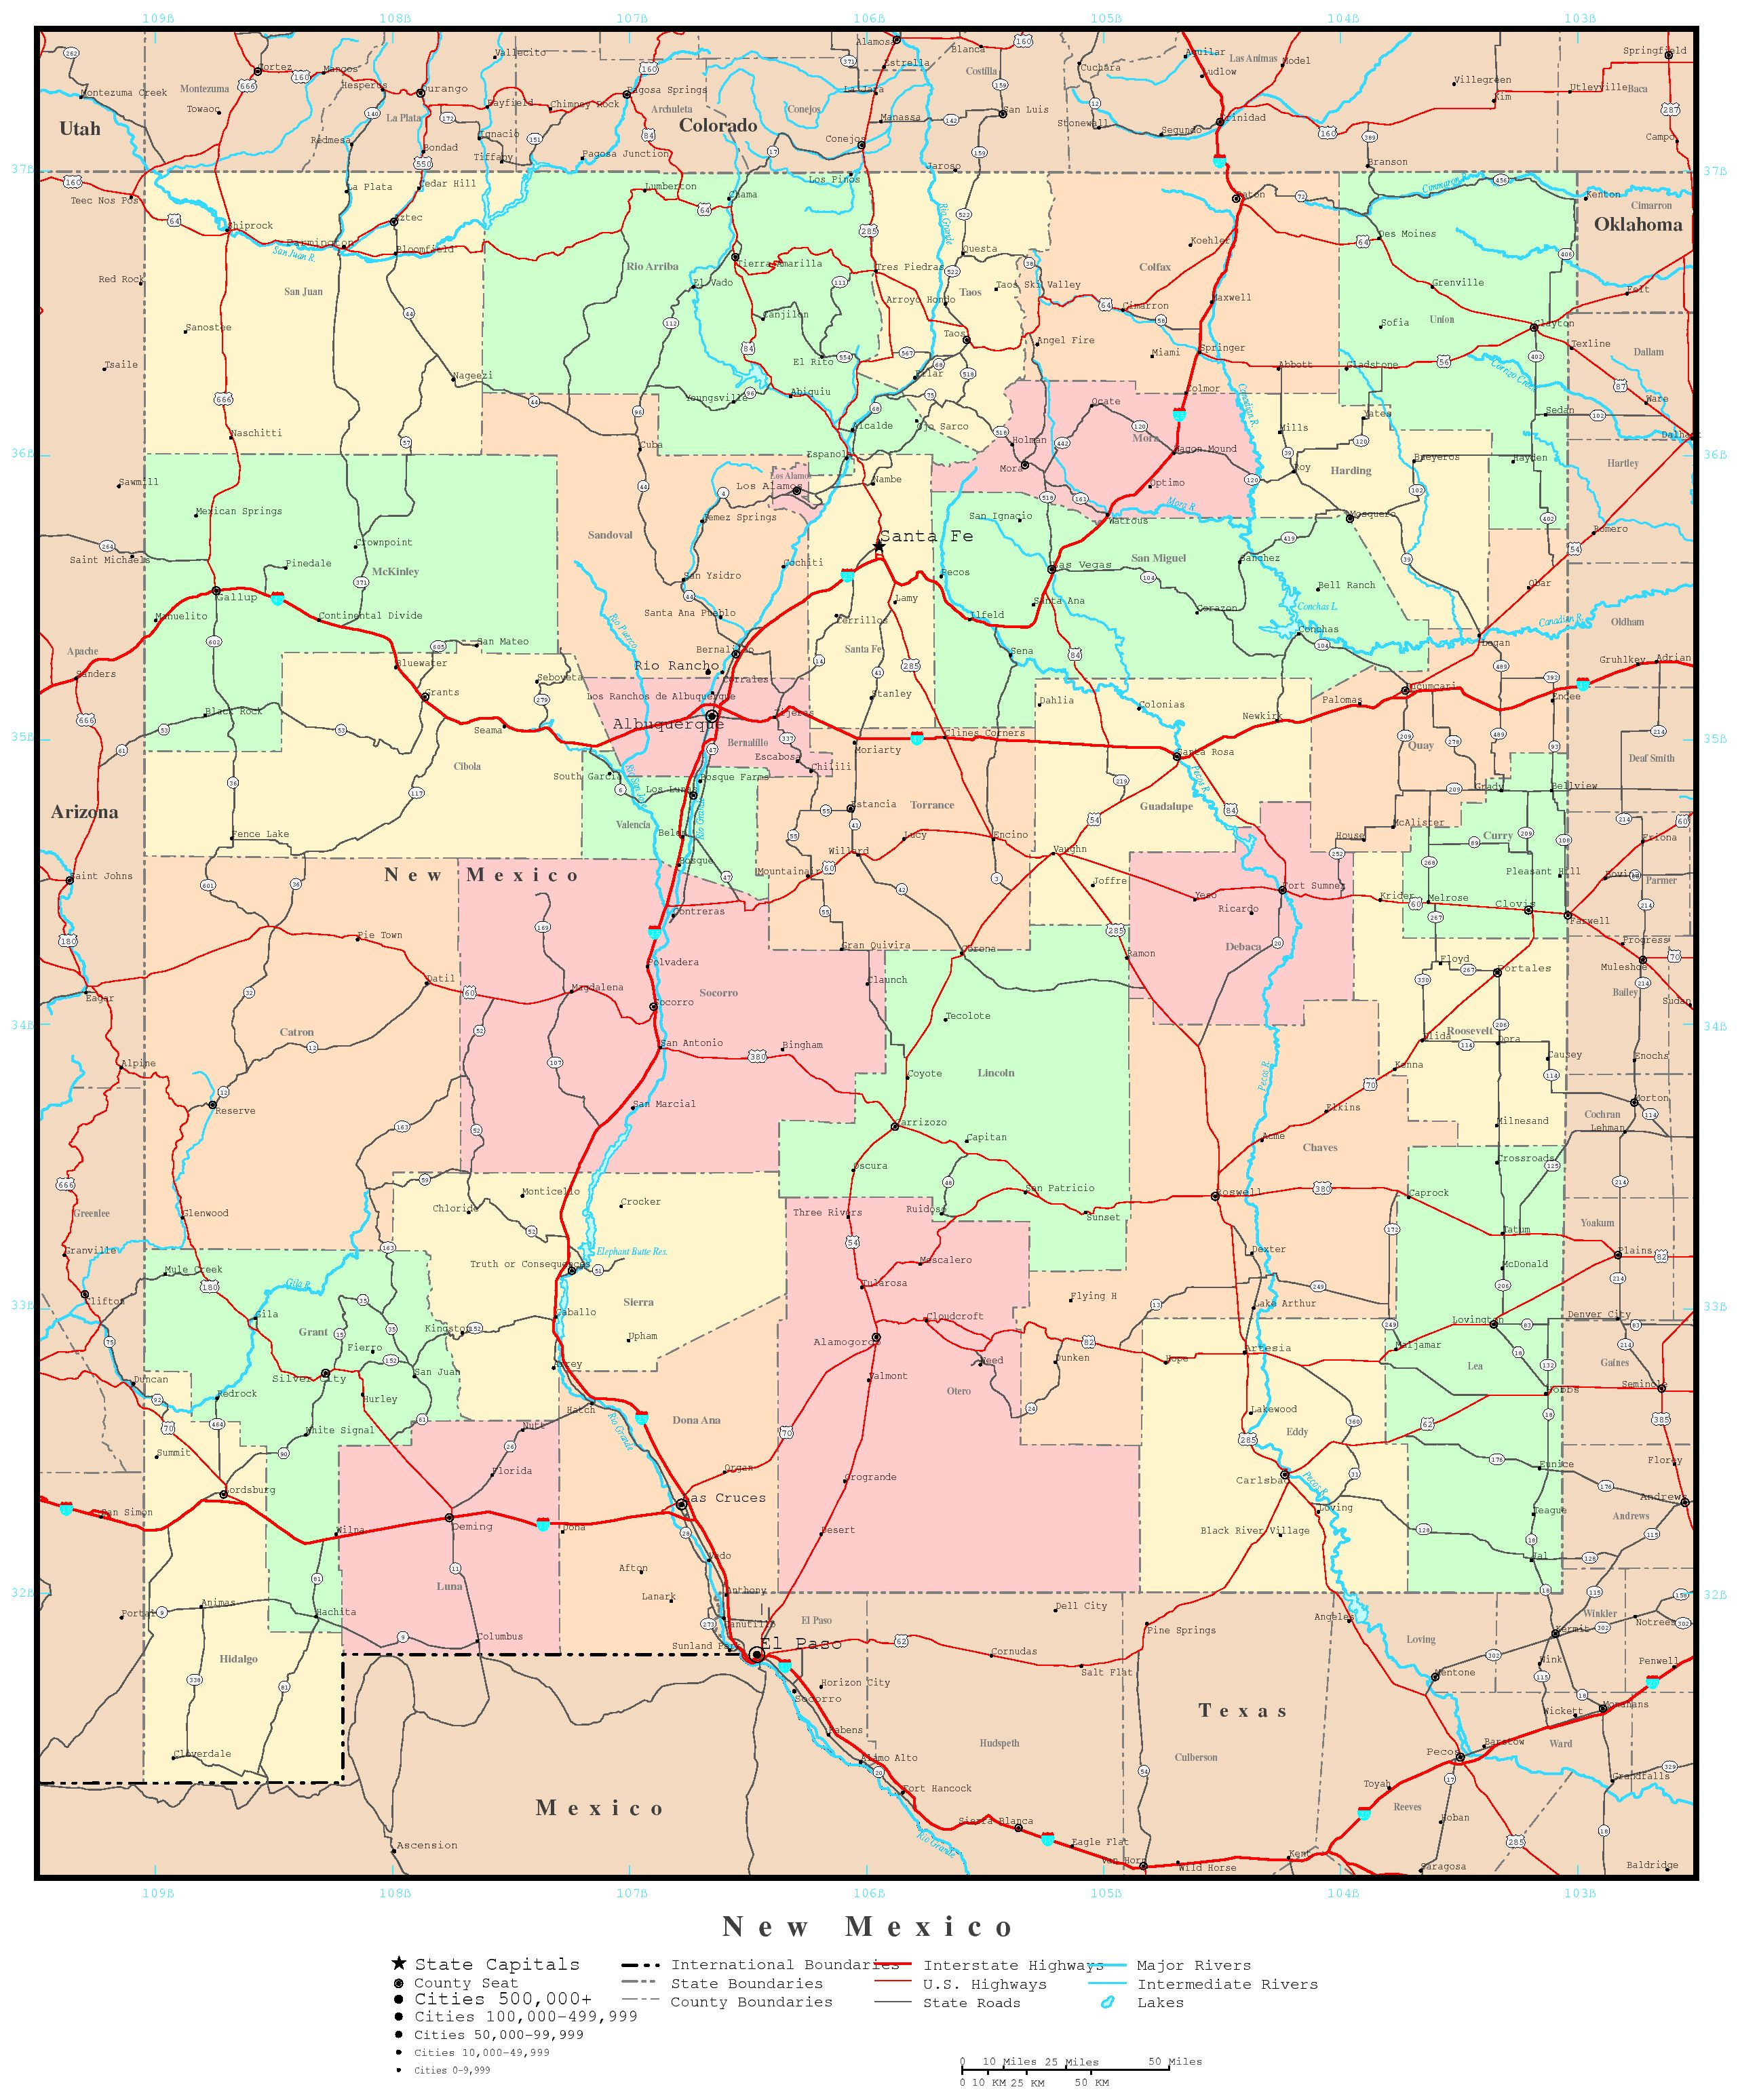 New Mexico Political Map